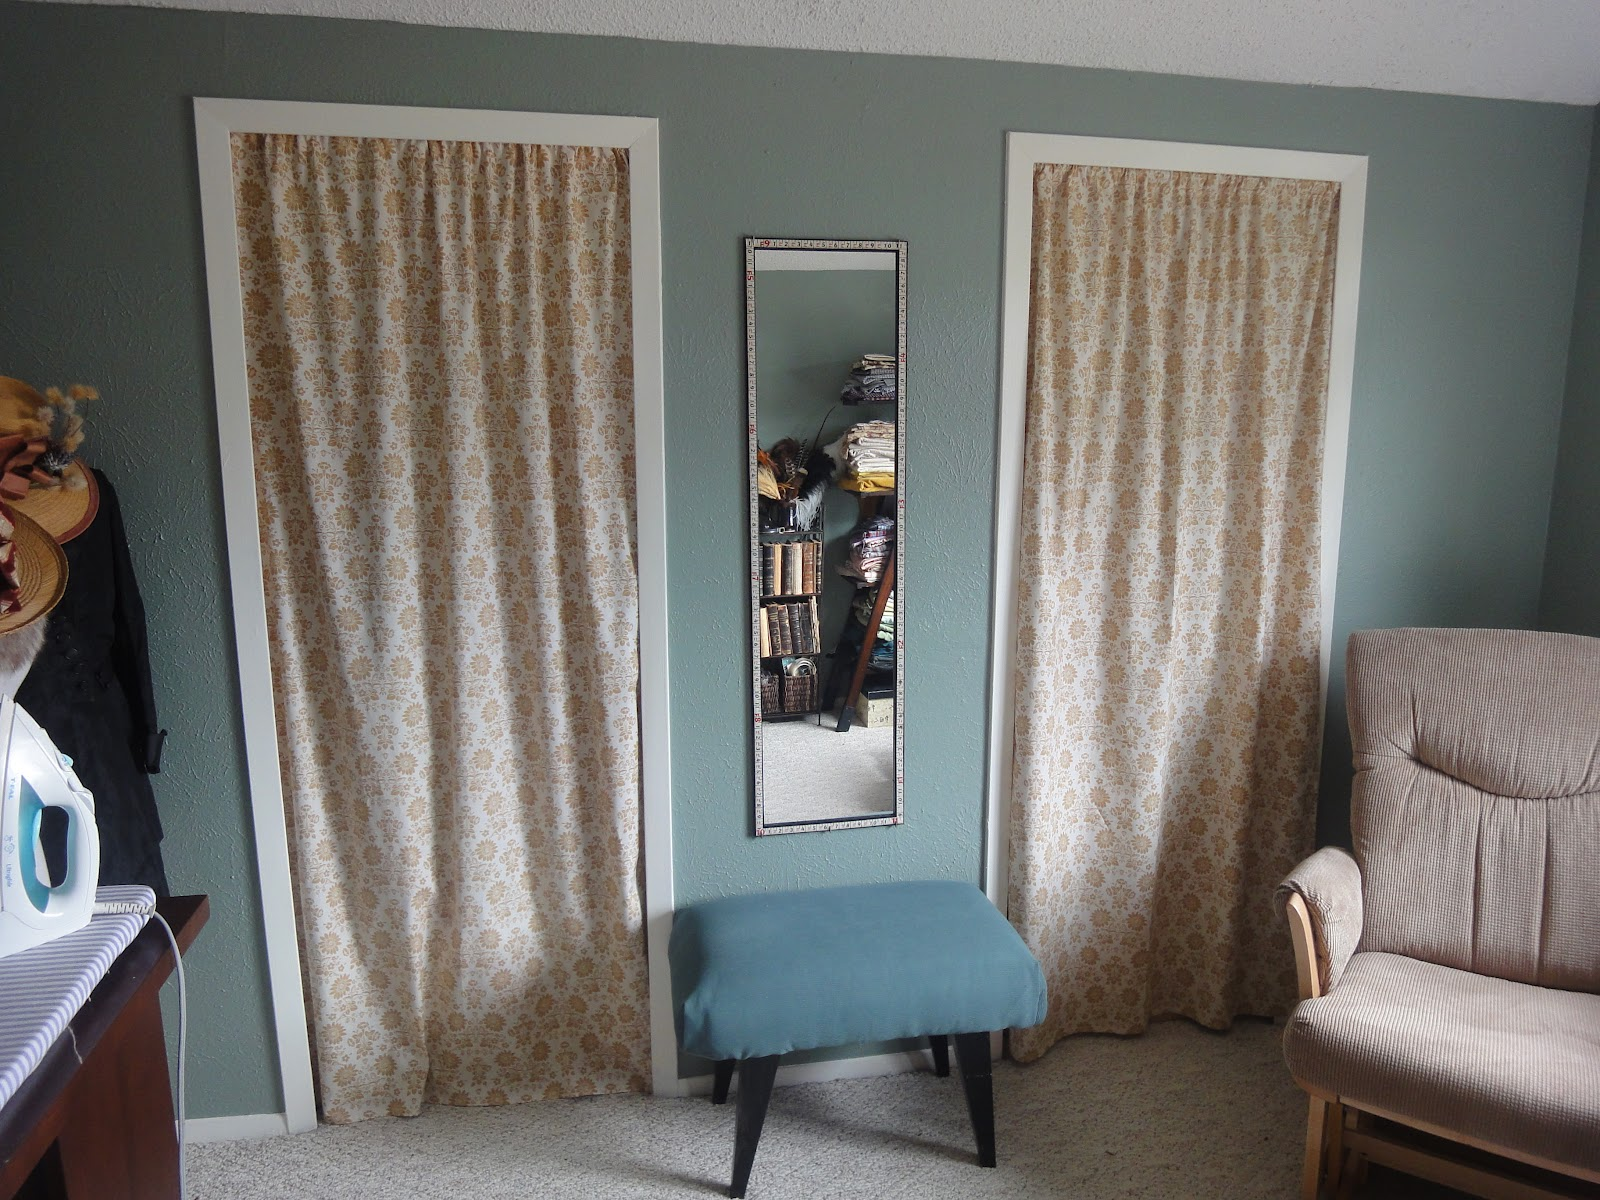 Cream And Stylish Pattern Design Of Curtains Door With Small Table And A  Recliner Long Mirror